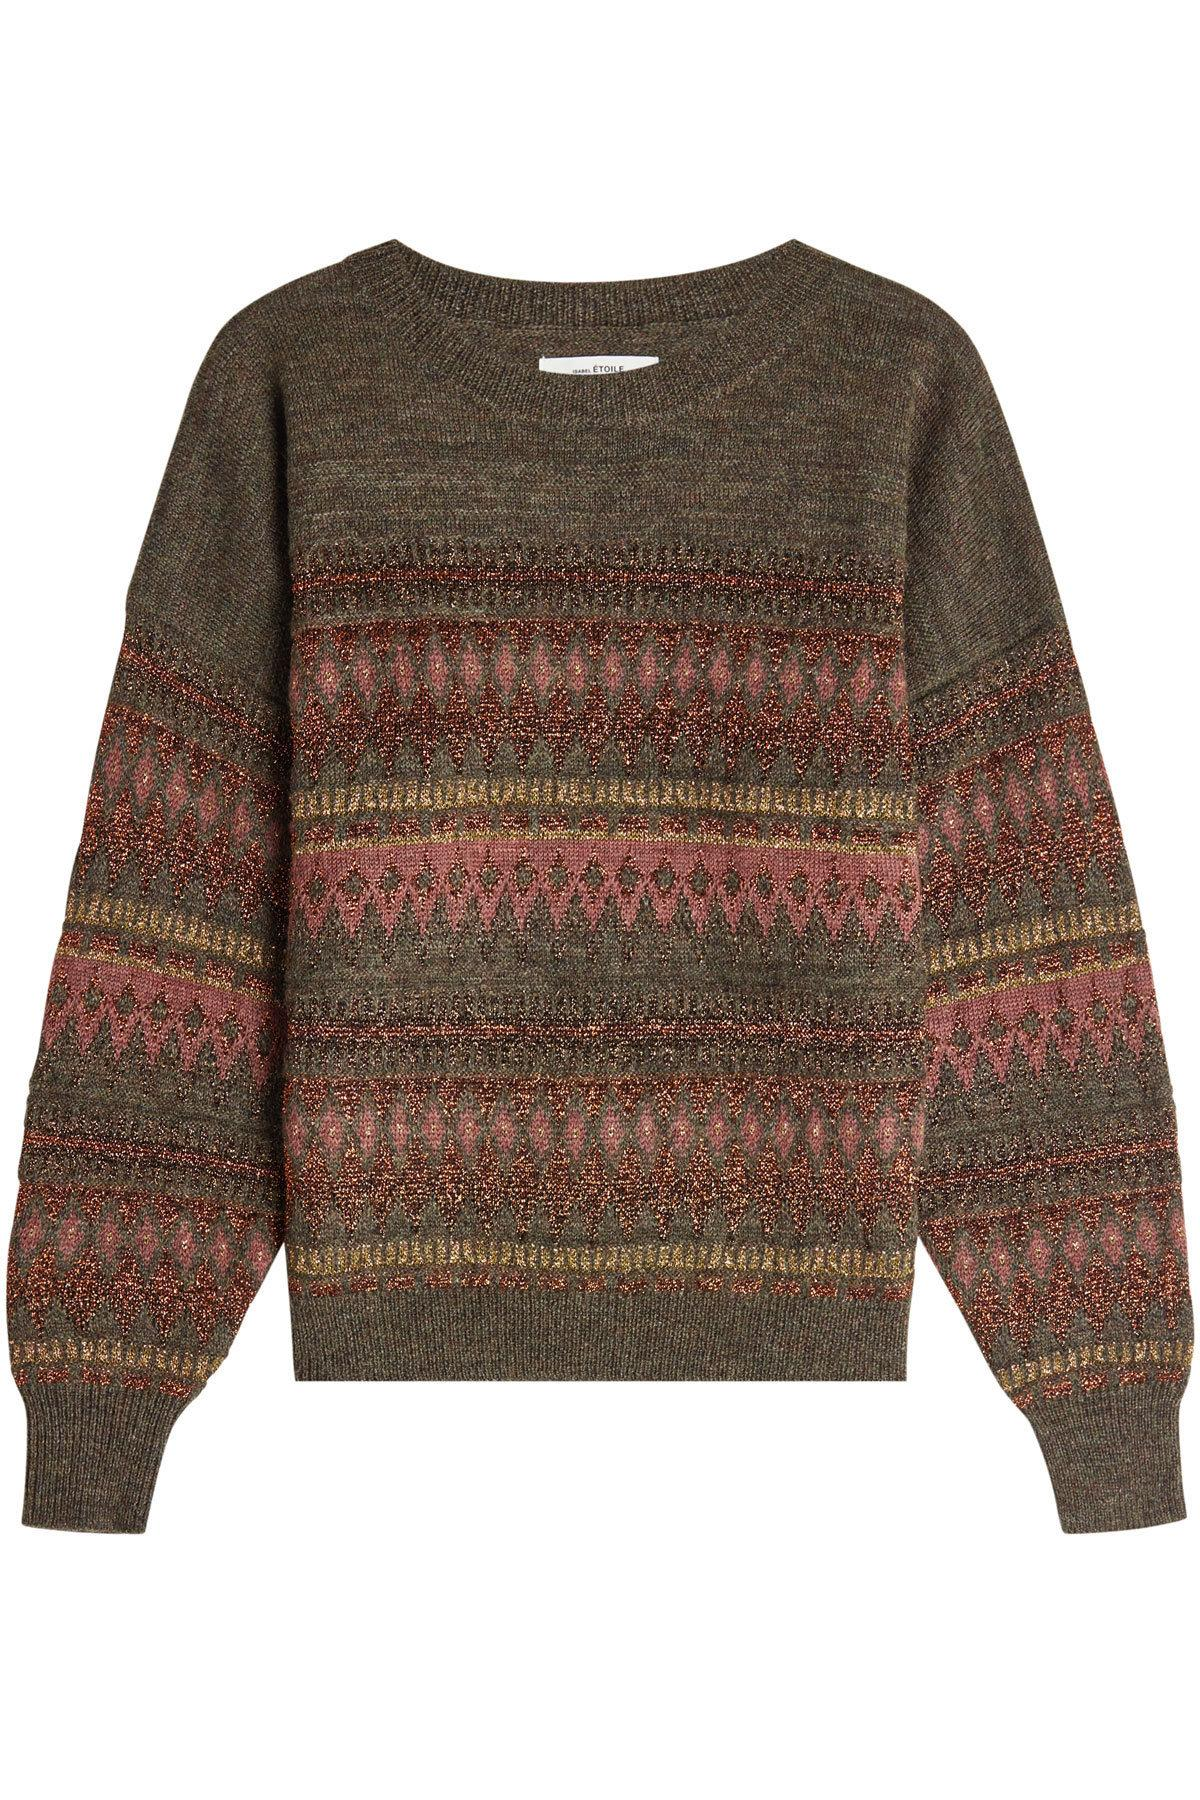 Etoile Isabel Marant Pullover With Wool And Metallic Thread In Multicolored